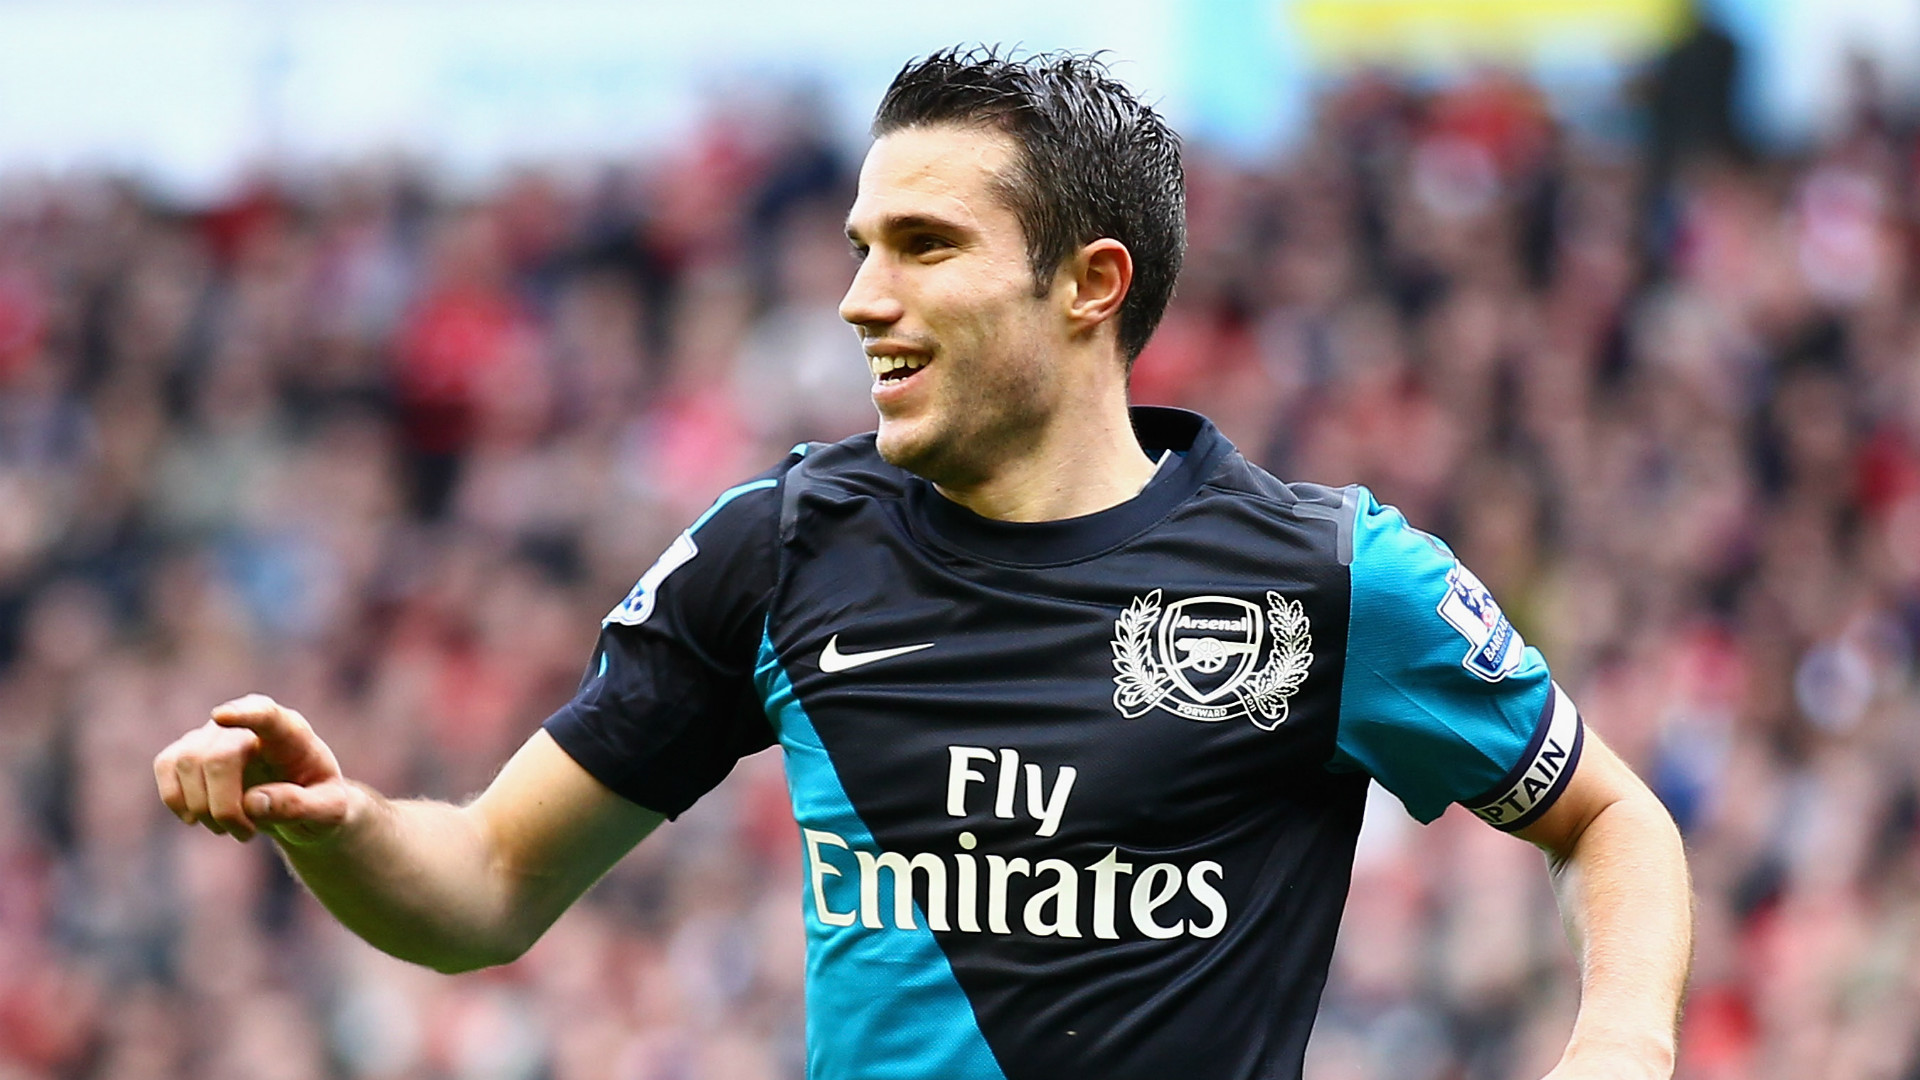 Van Persie 'sorry' if Man Utd move angered Arsenal fans, but has no regrets